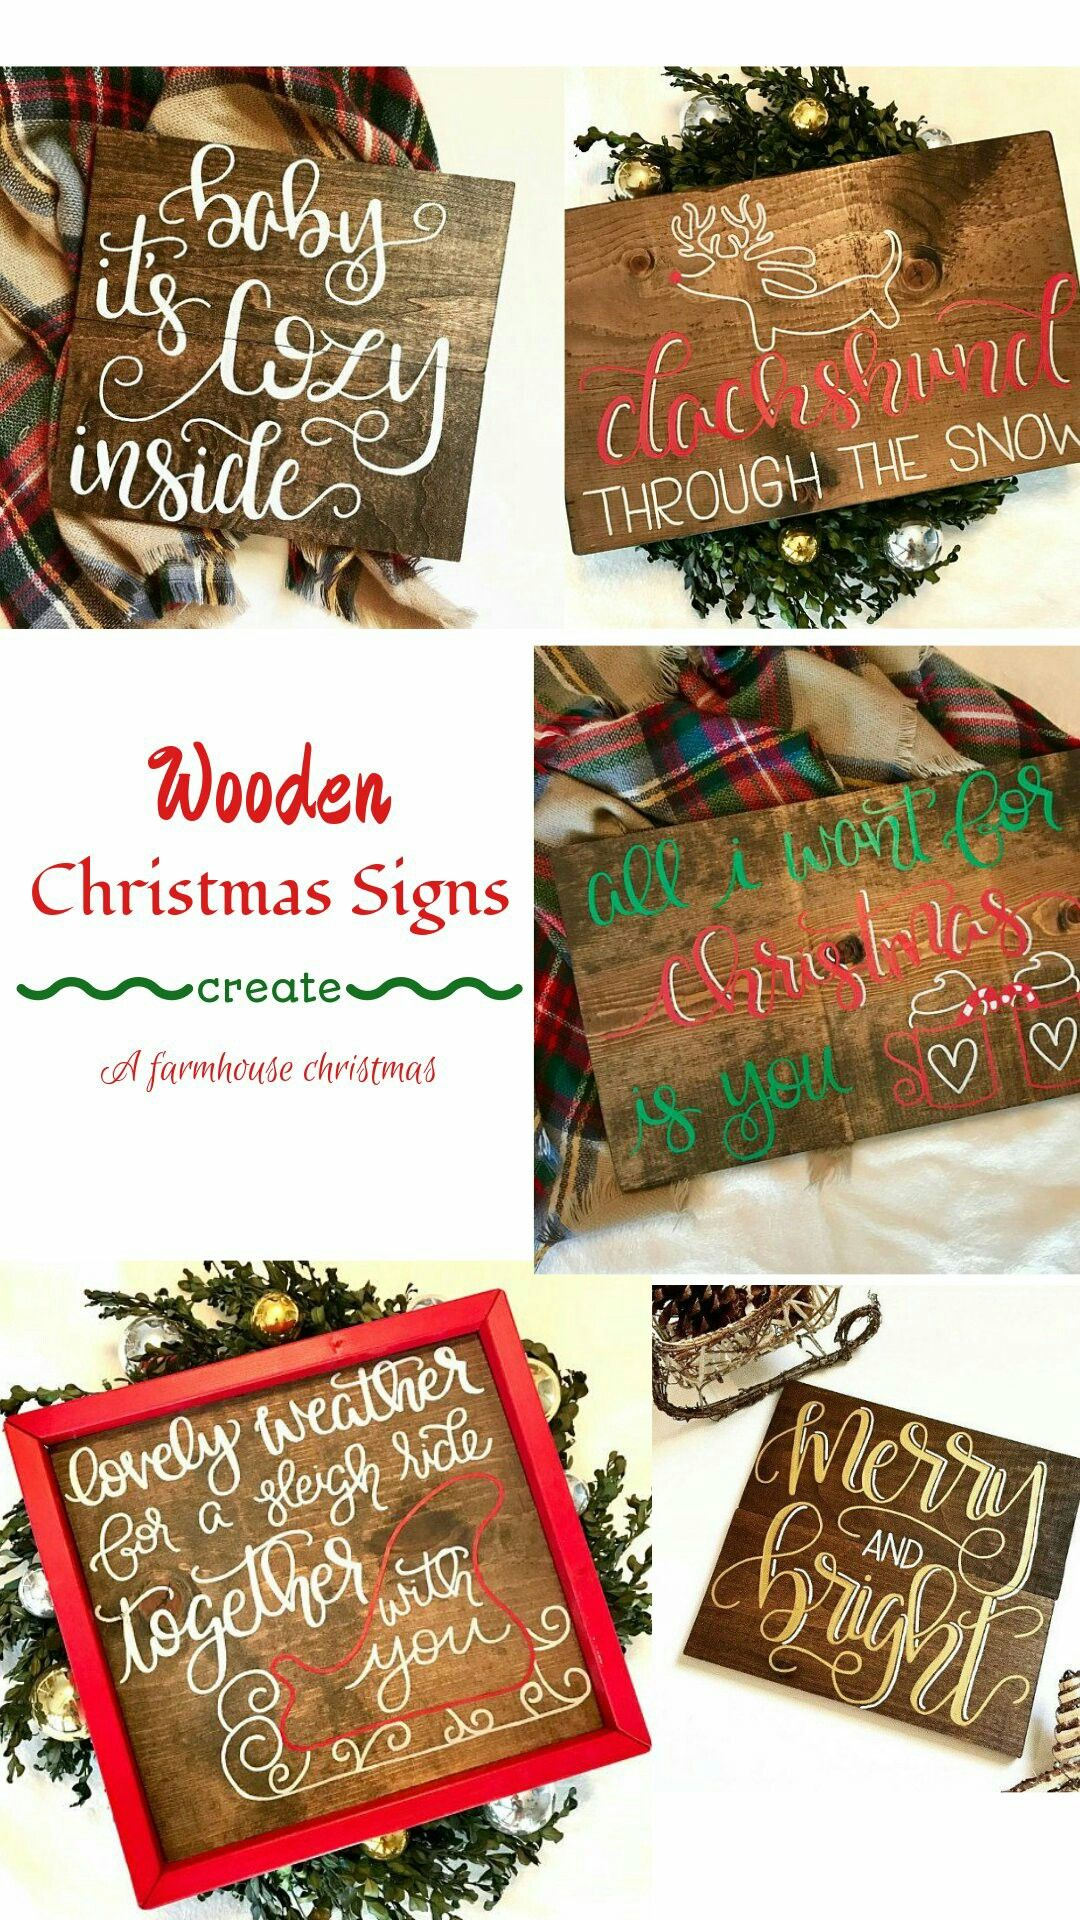 These Hand Painted Christmas Signs Are Amazing Look At That